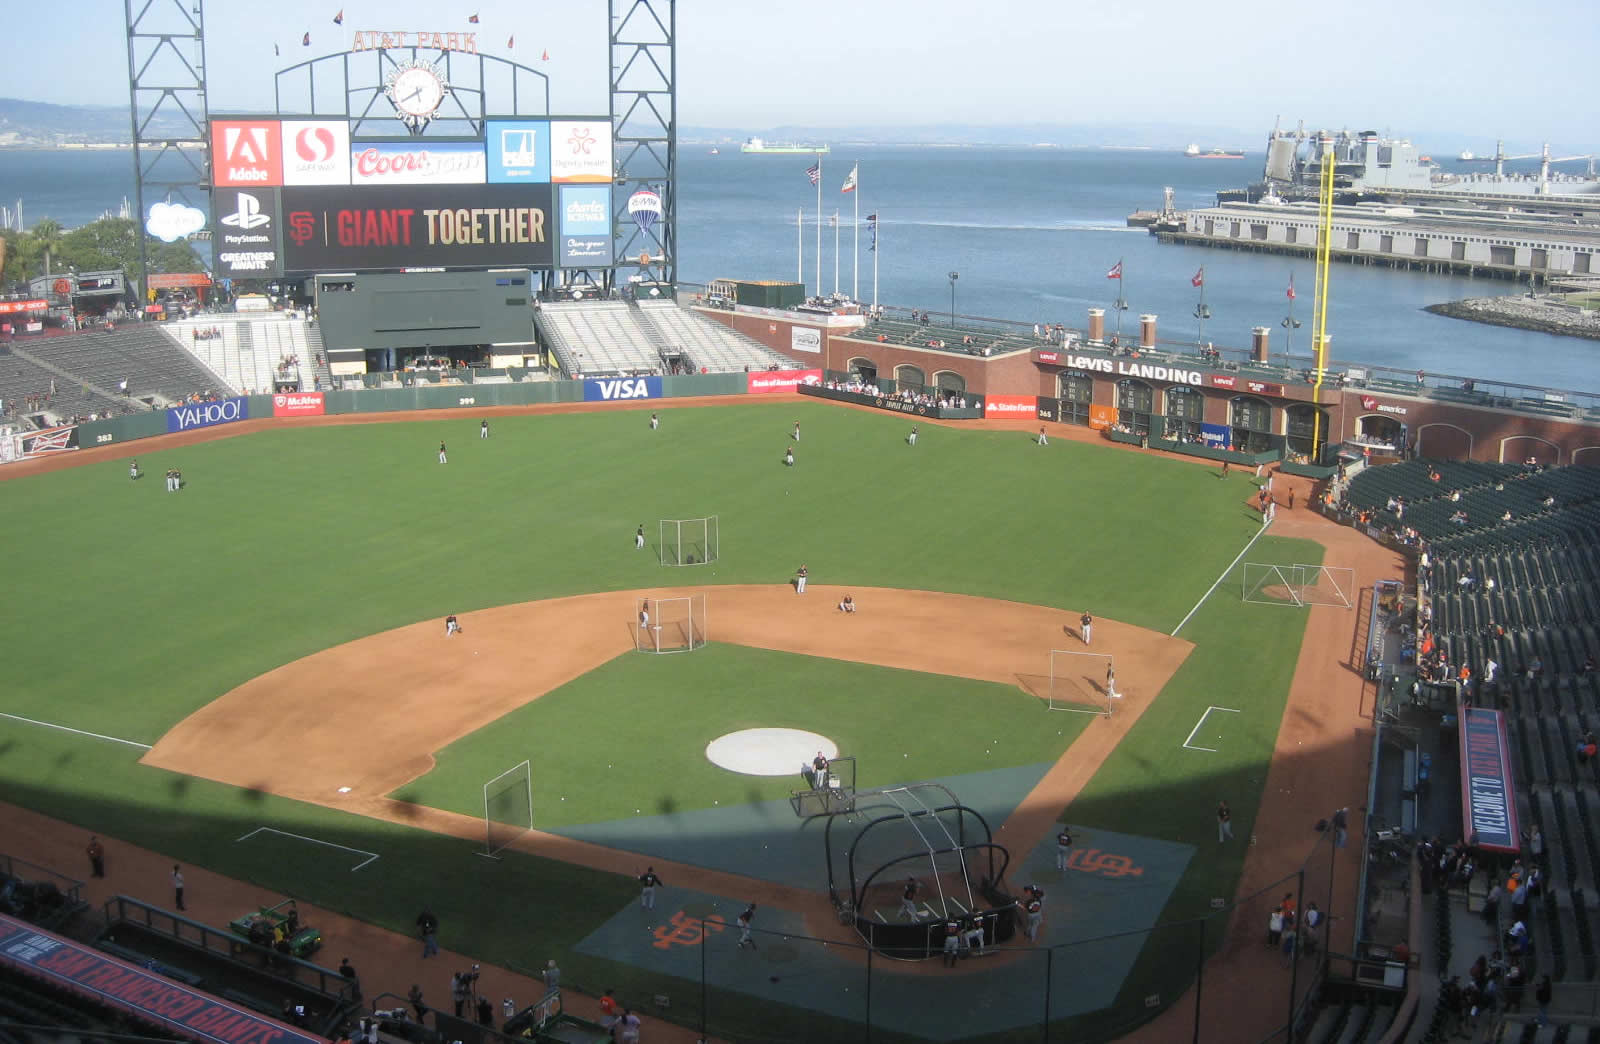 Best Seats For Great Views Of The Field At Oracle Park